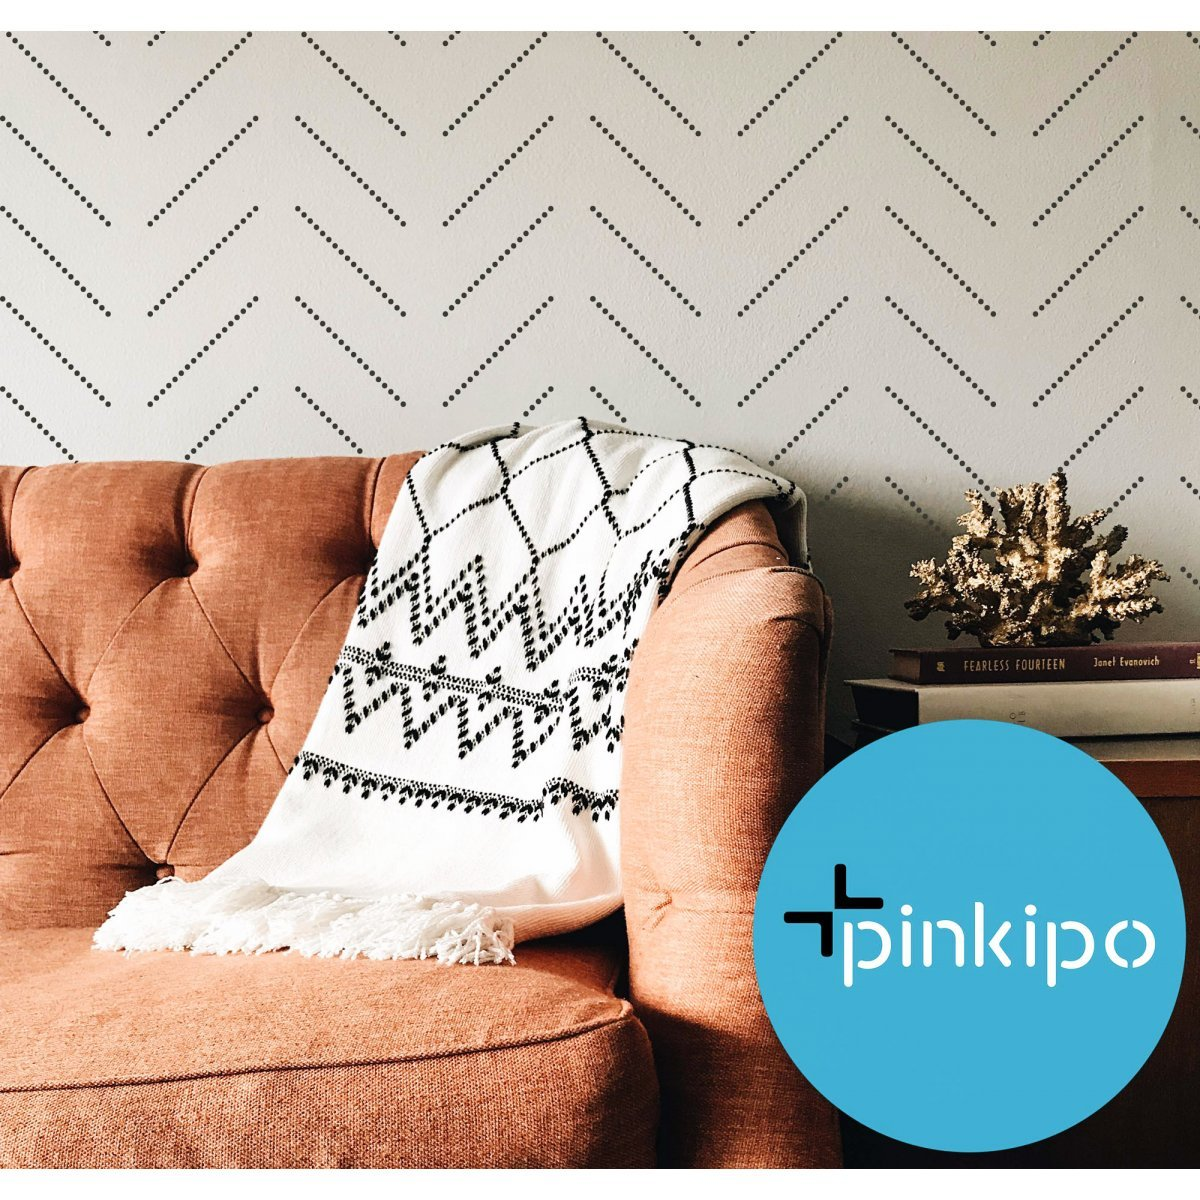 ASSOS / HERRINGBONE DOTTED / Reusable Allover Large Wall Stencils for Painting